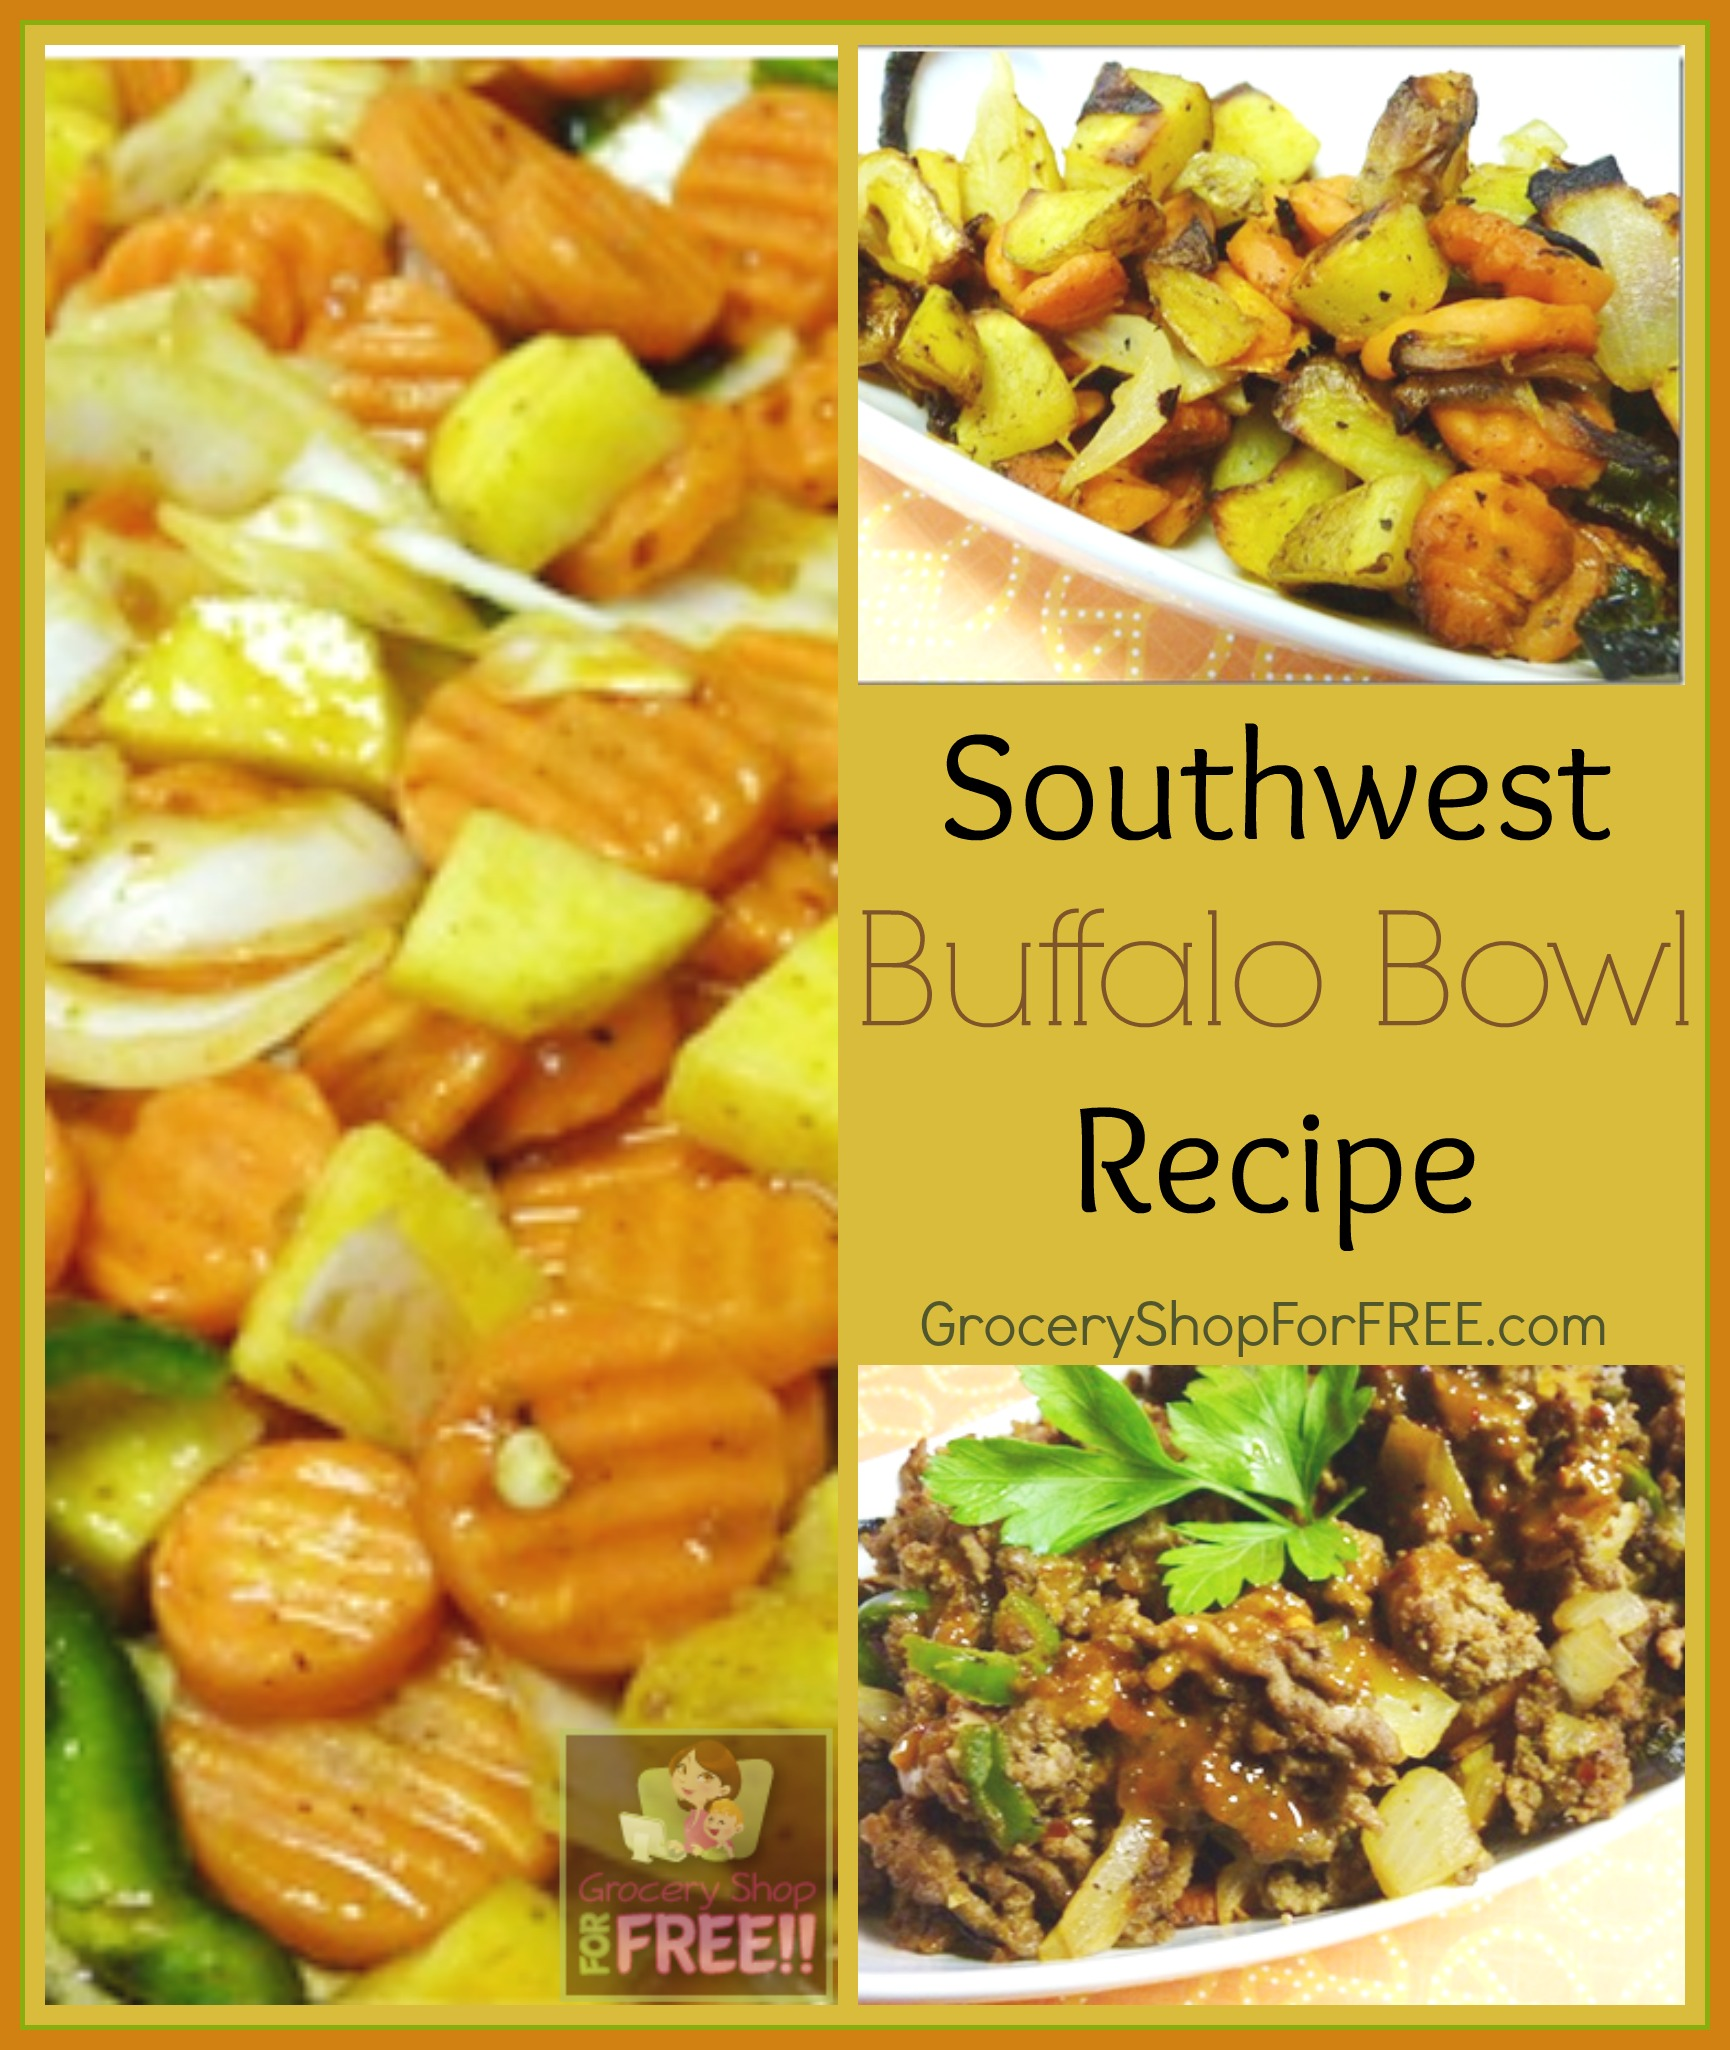 Southwest Buffalo Bowl Recipe!